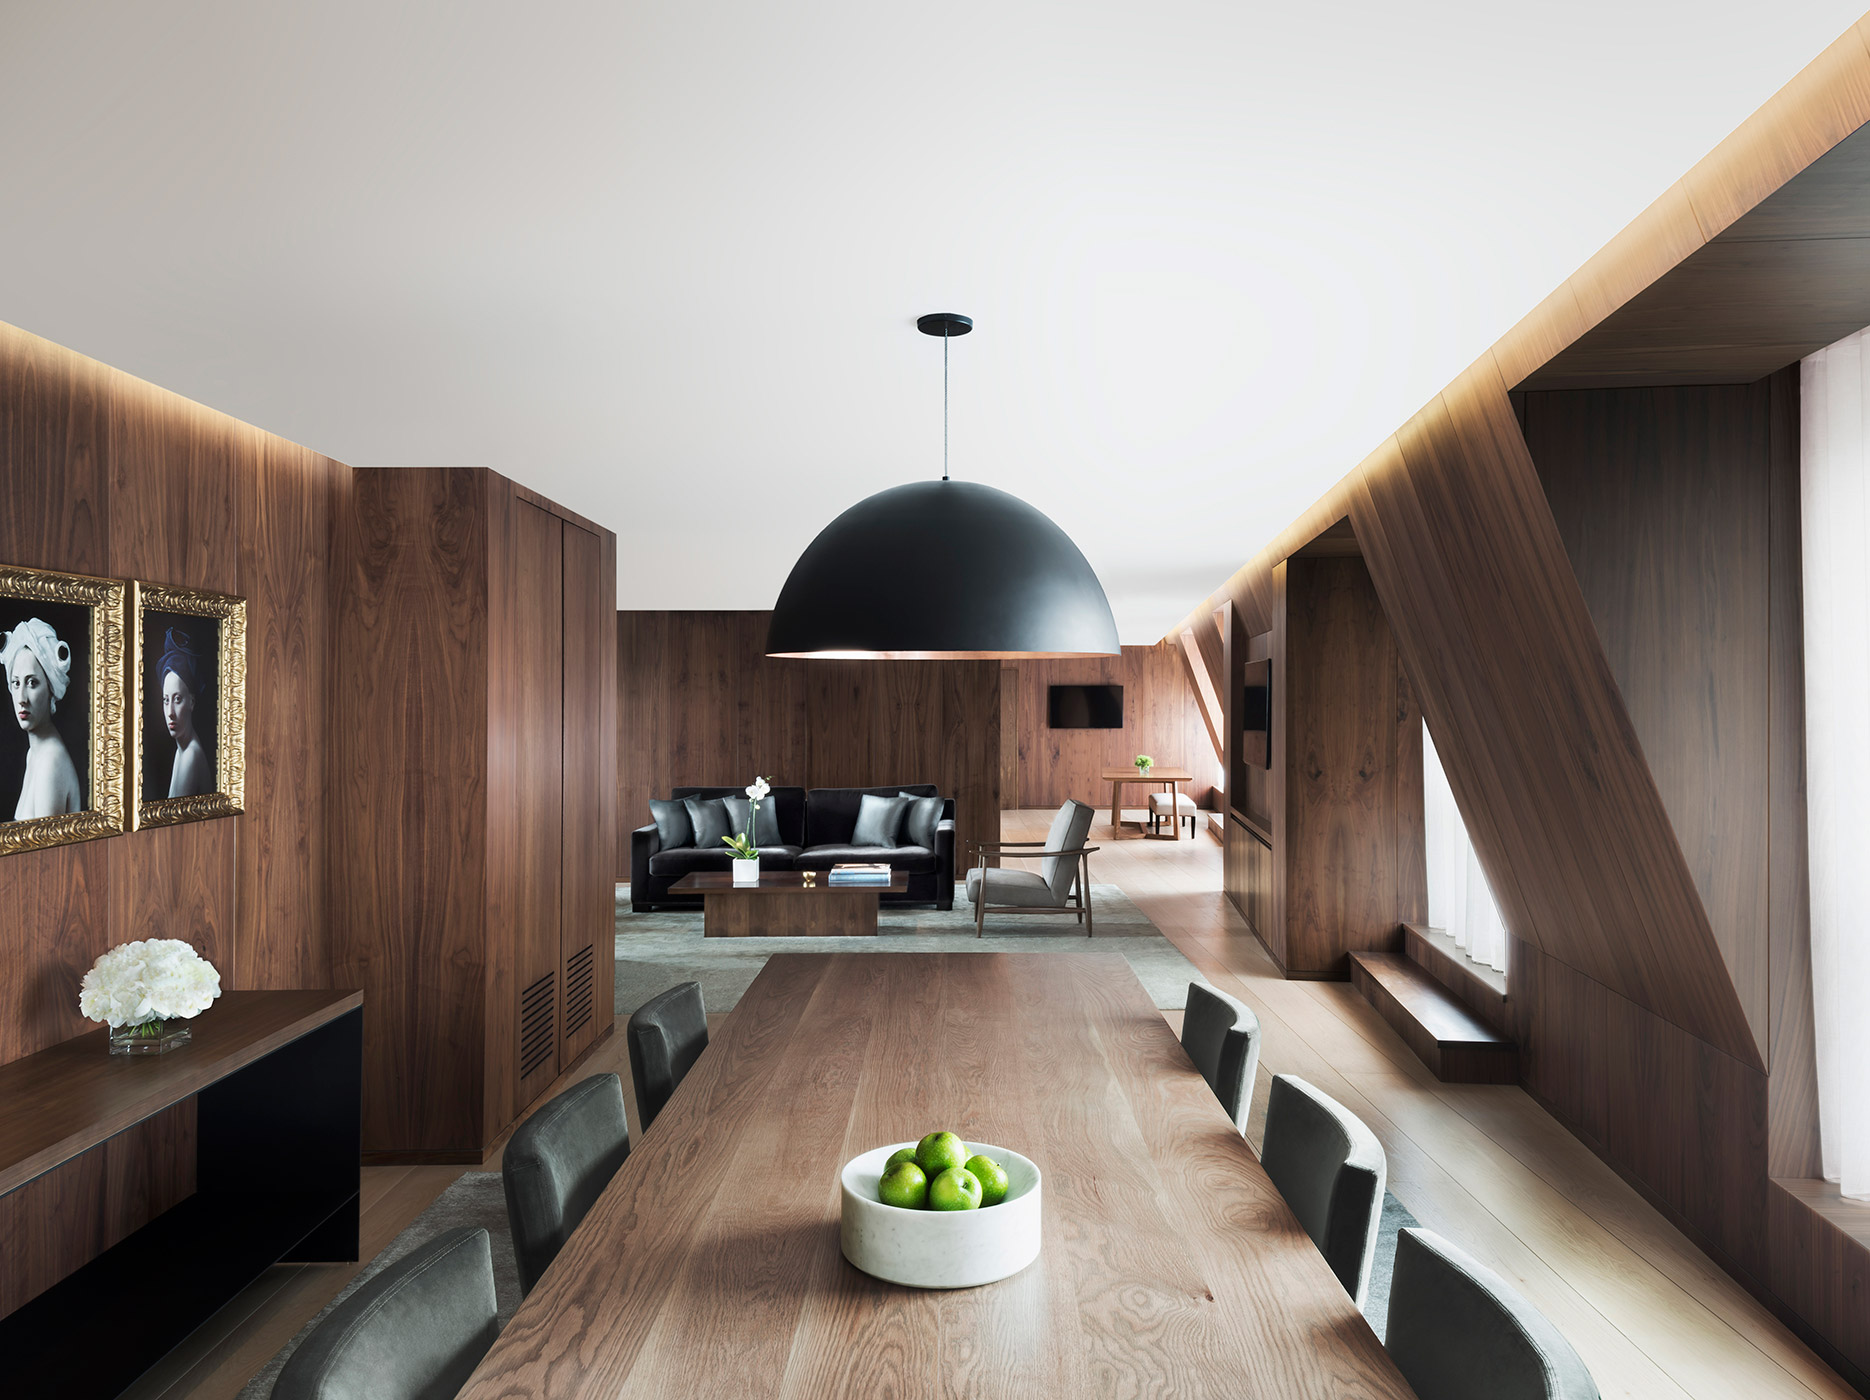 The-London-EDITION-Penthouse-Dining-1870x1400.jpg